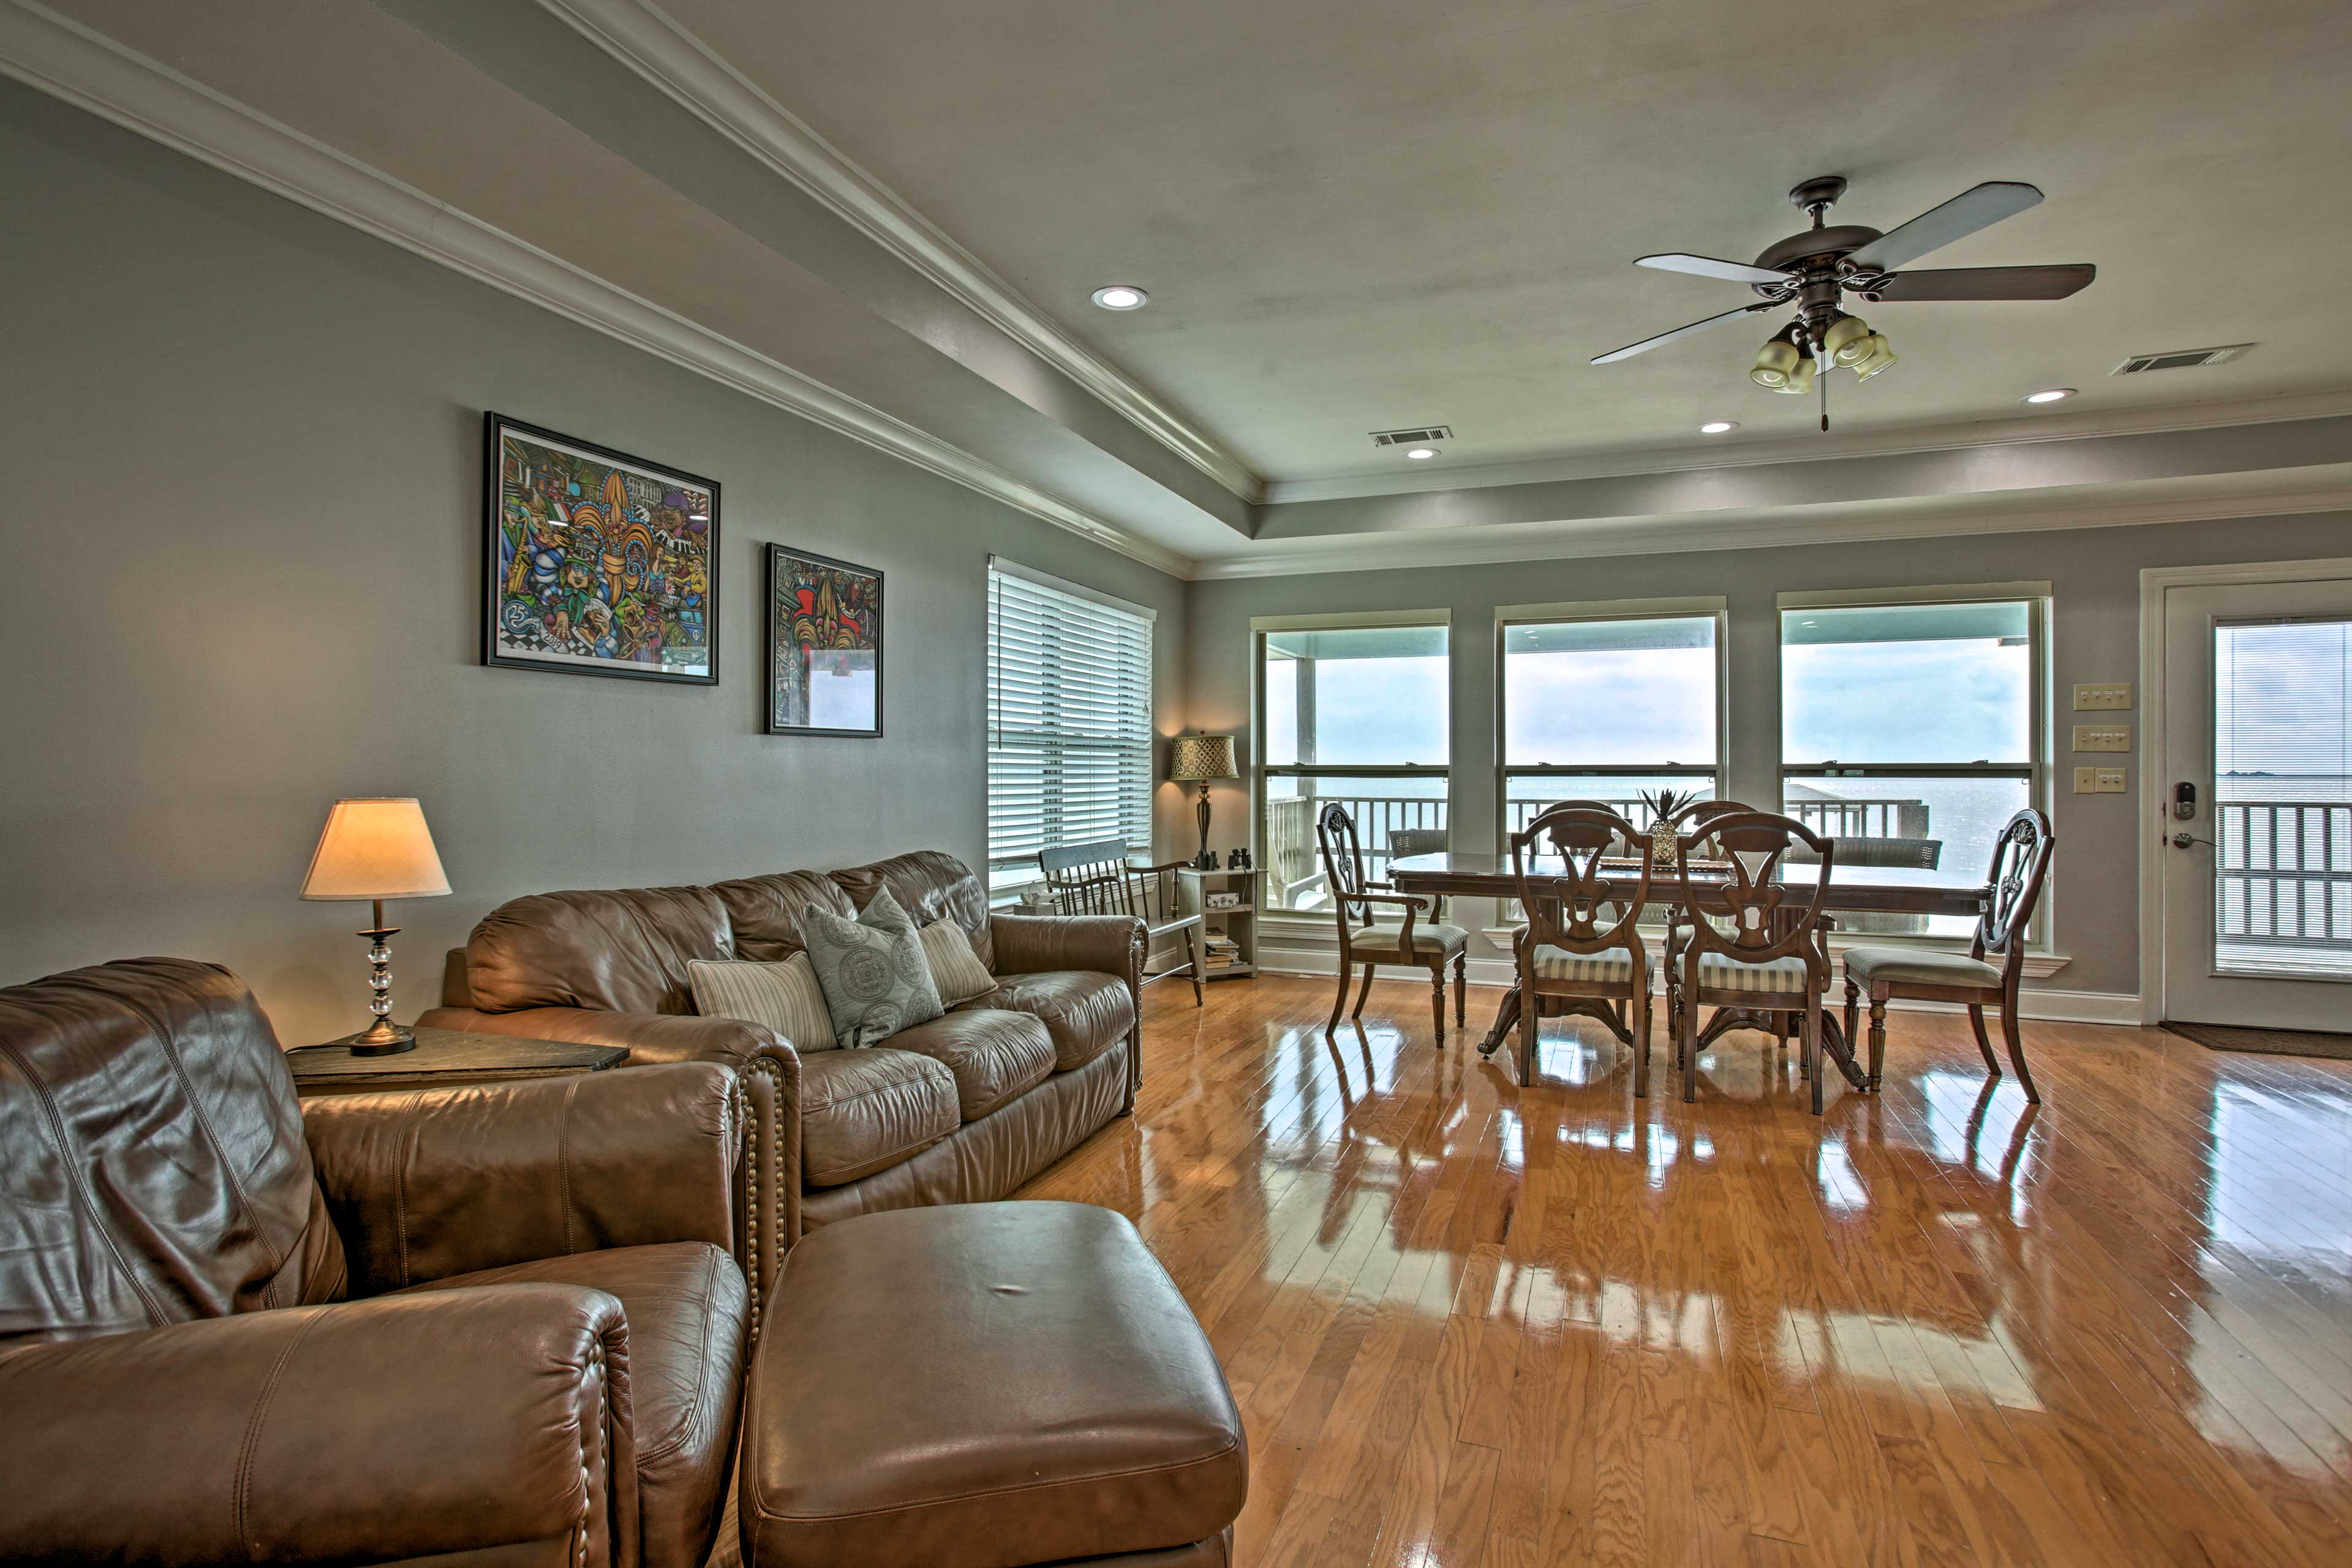 Living Room | Stairs Required | Free WiFi | Central A/C & Heat